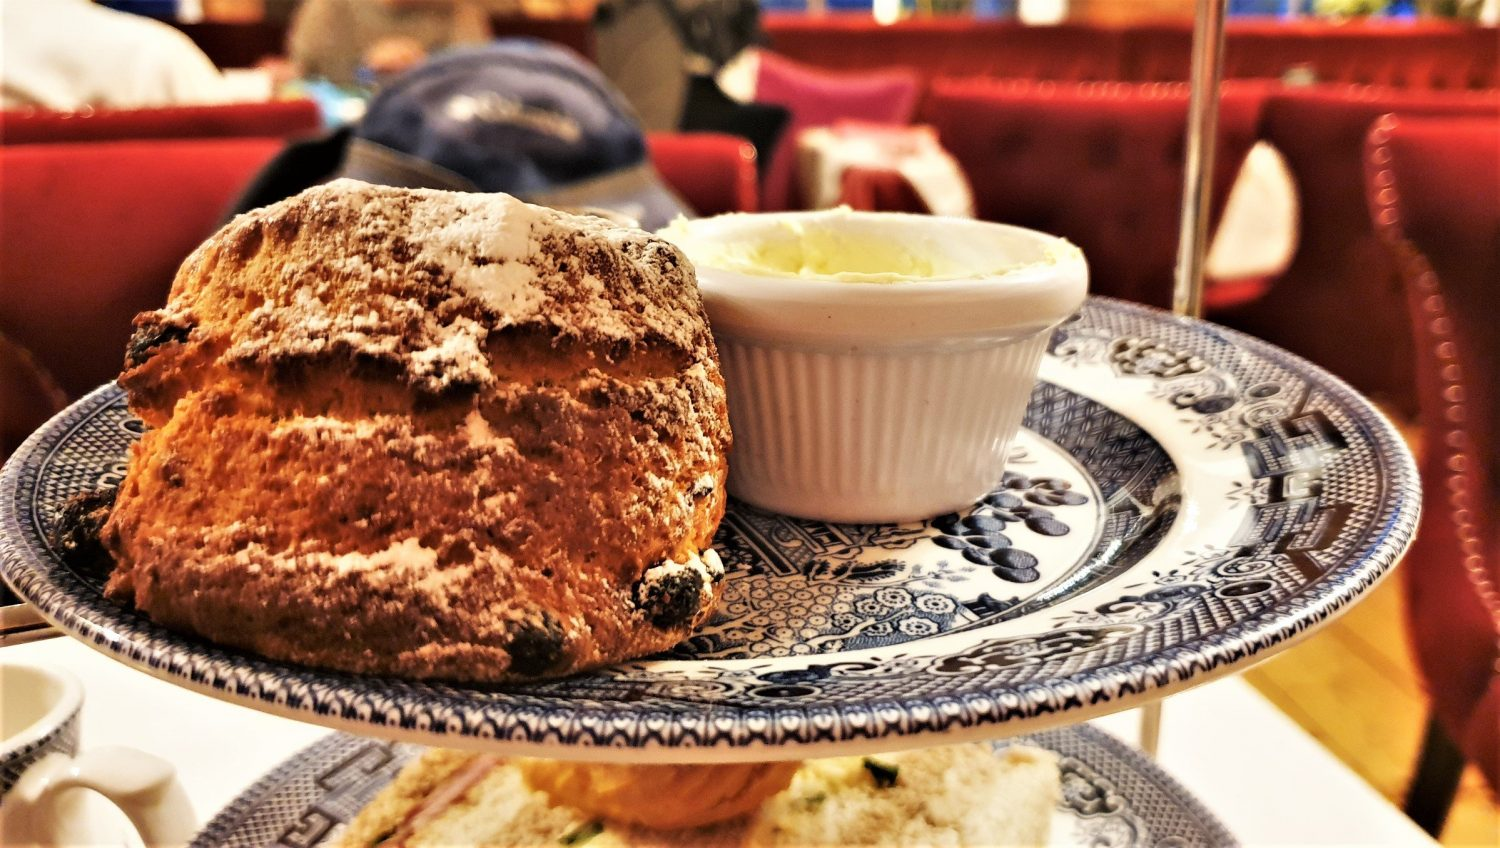 Scone Richmond Tea Rooms